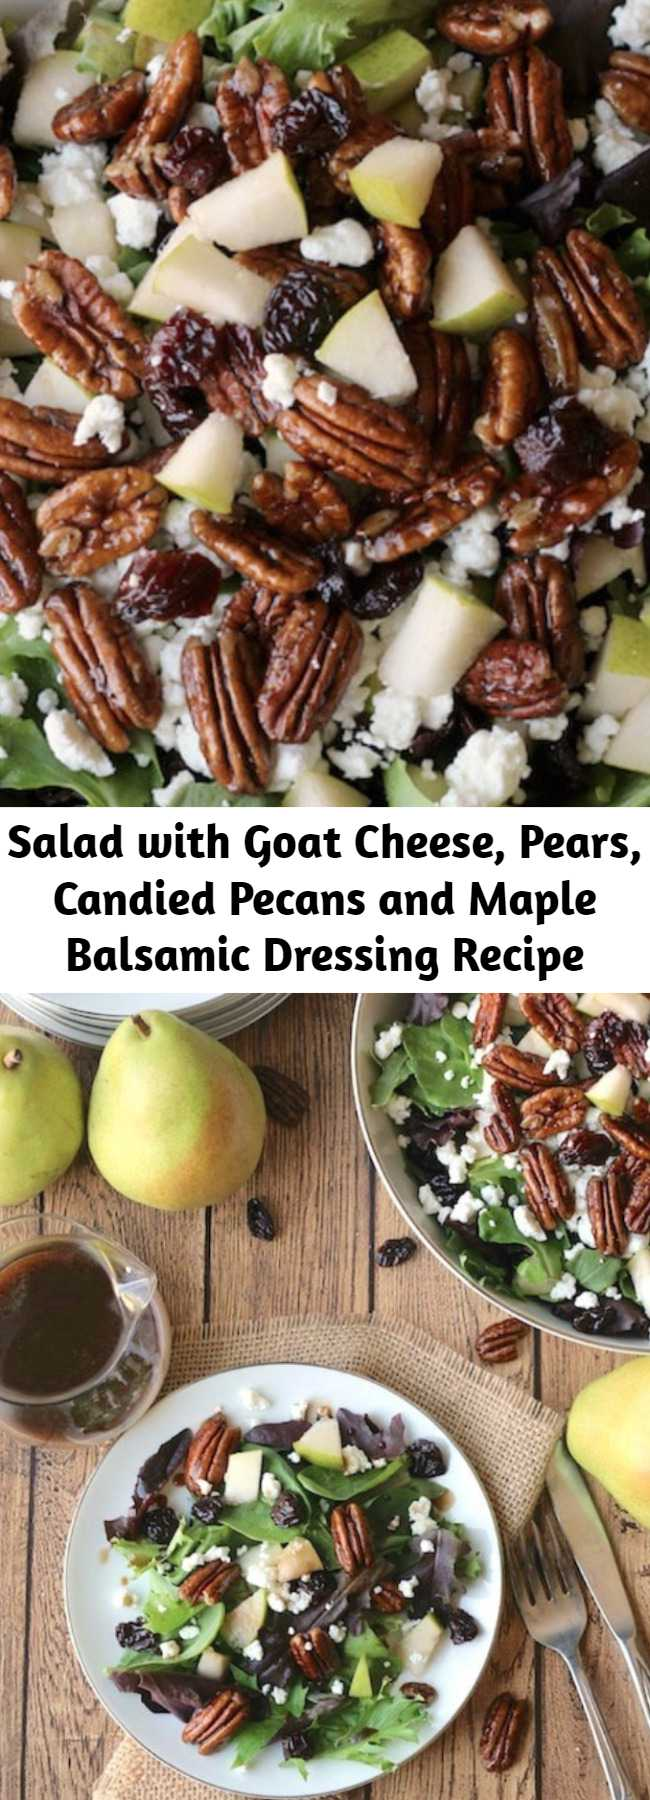 Salad with Goat Cheese, Pears, Candied Pecans and Maple Balsamic Dressing Recipe - An incredibly delicious, yet really easy salad recipe! An absolutely perfect Thanksgiving salad, or holiday salad for dinner parties ... but quick enough for family dinners, too!